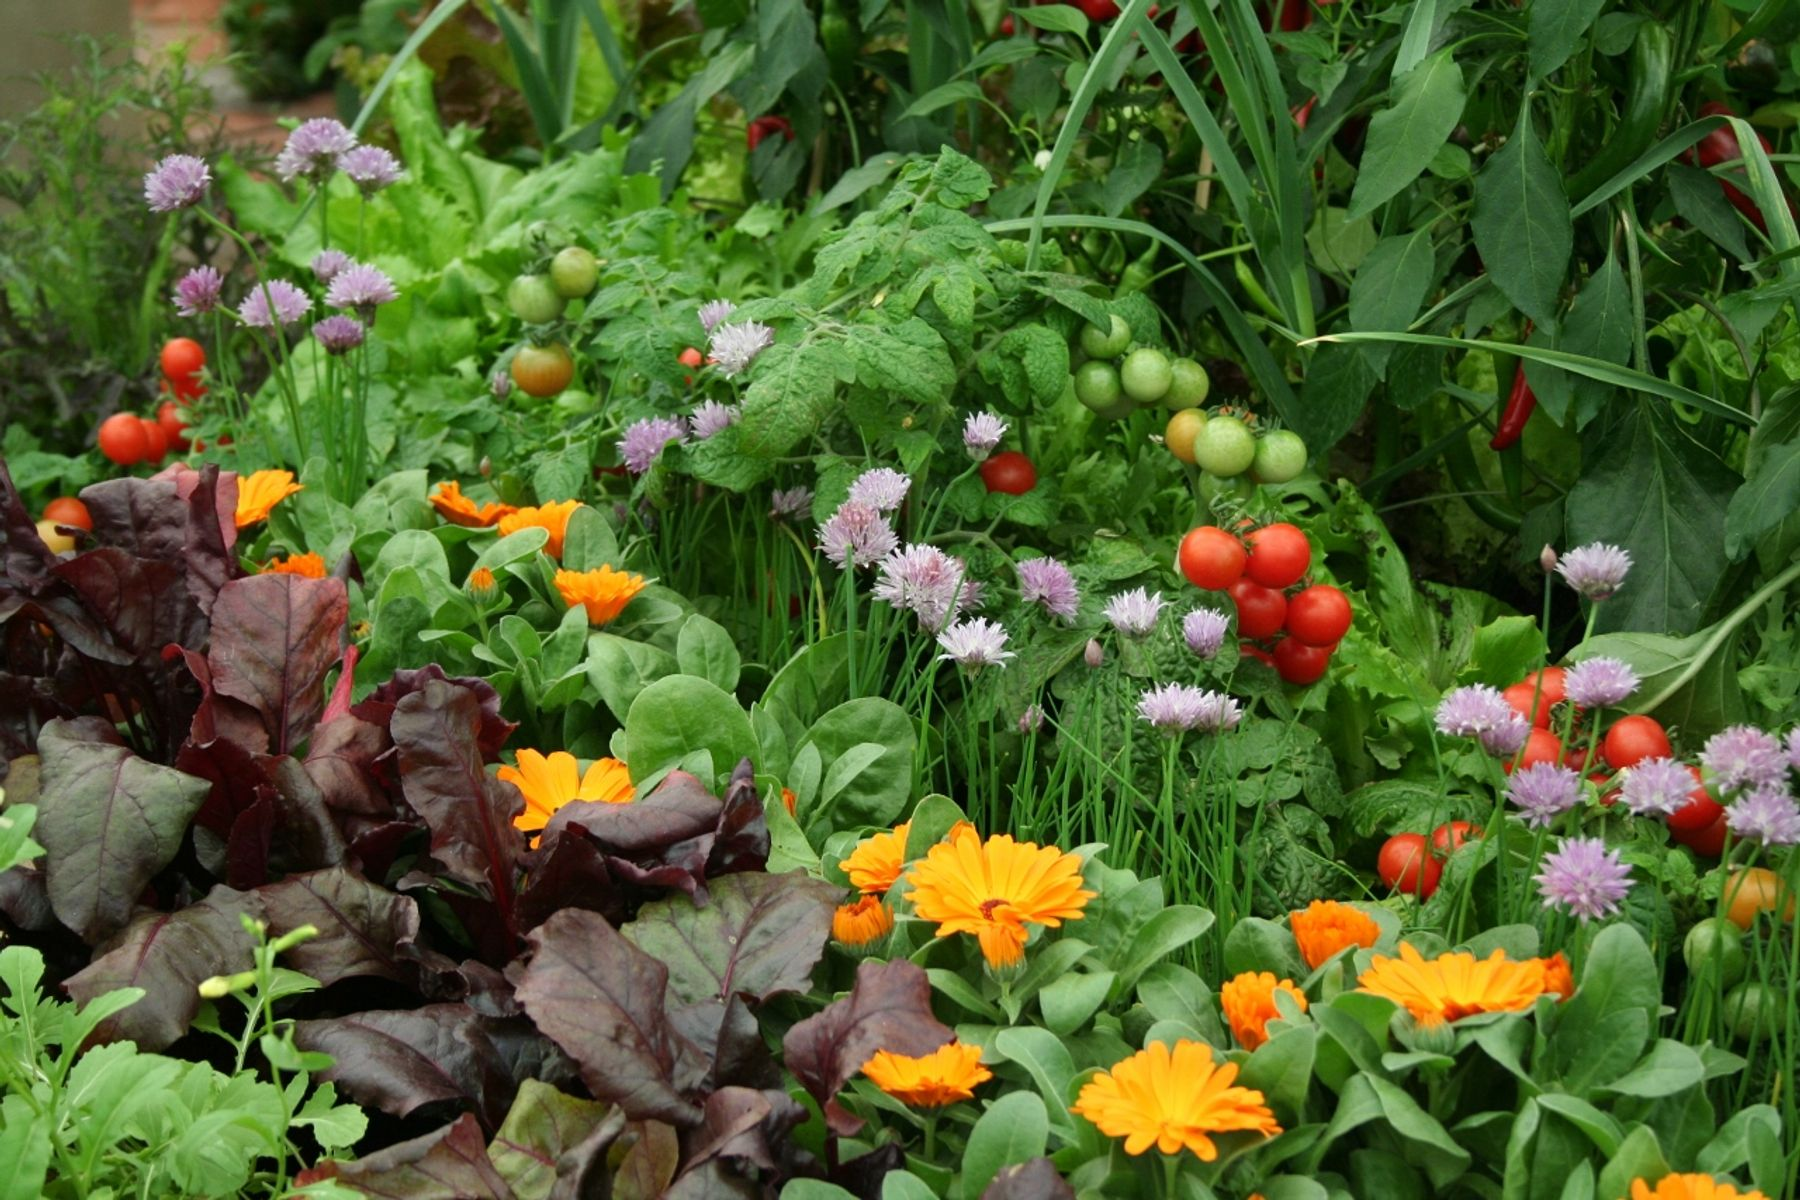 Companion planting how to deter pests and encourage beneficial insects gardening Flowers to plant in vegetable garden